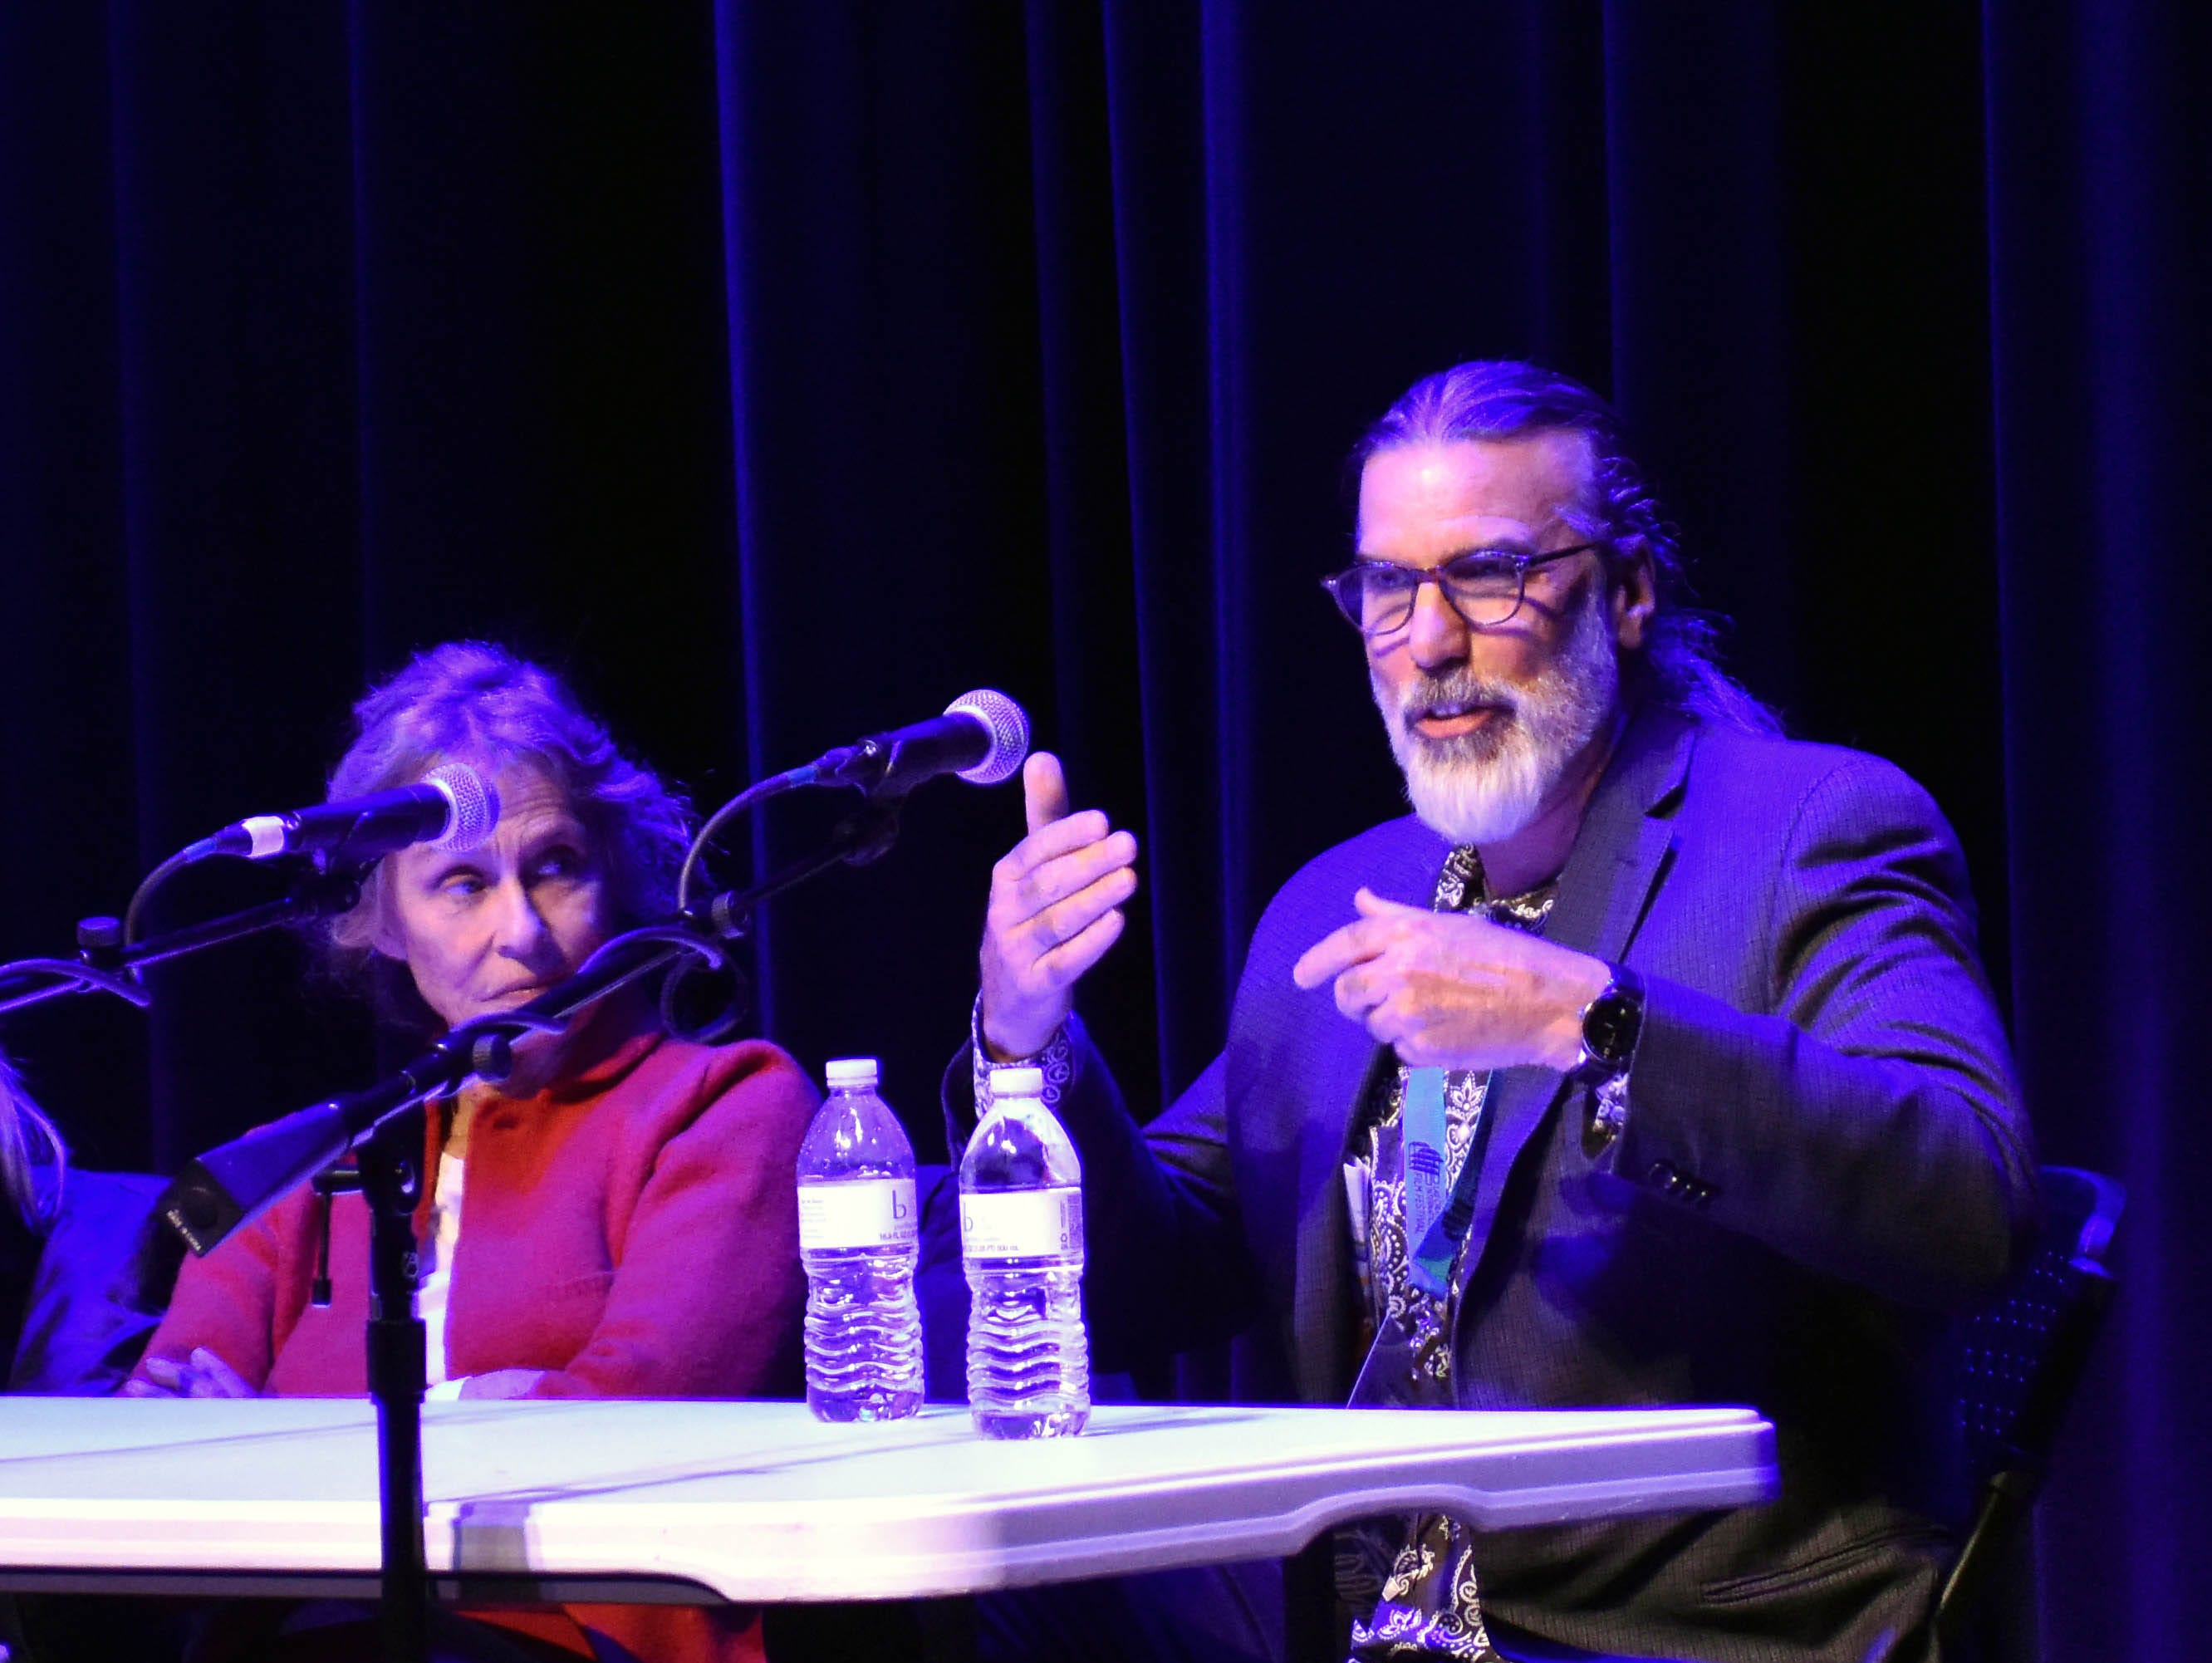 """From left, actress Lauren Hutton (""""American Gigolo"""") and Producer Don Foster (""""Big Bang Theory"""") participate in the """"Making It Work in Hollywood"""" panel Saturday, Feb. 23, 2019, at the Rio Grande Theatre, part of the Las Cruces International Film Festival."""